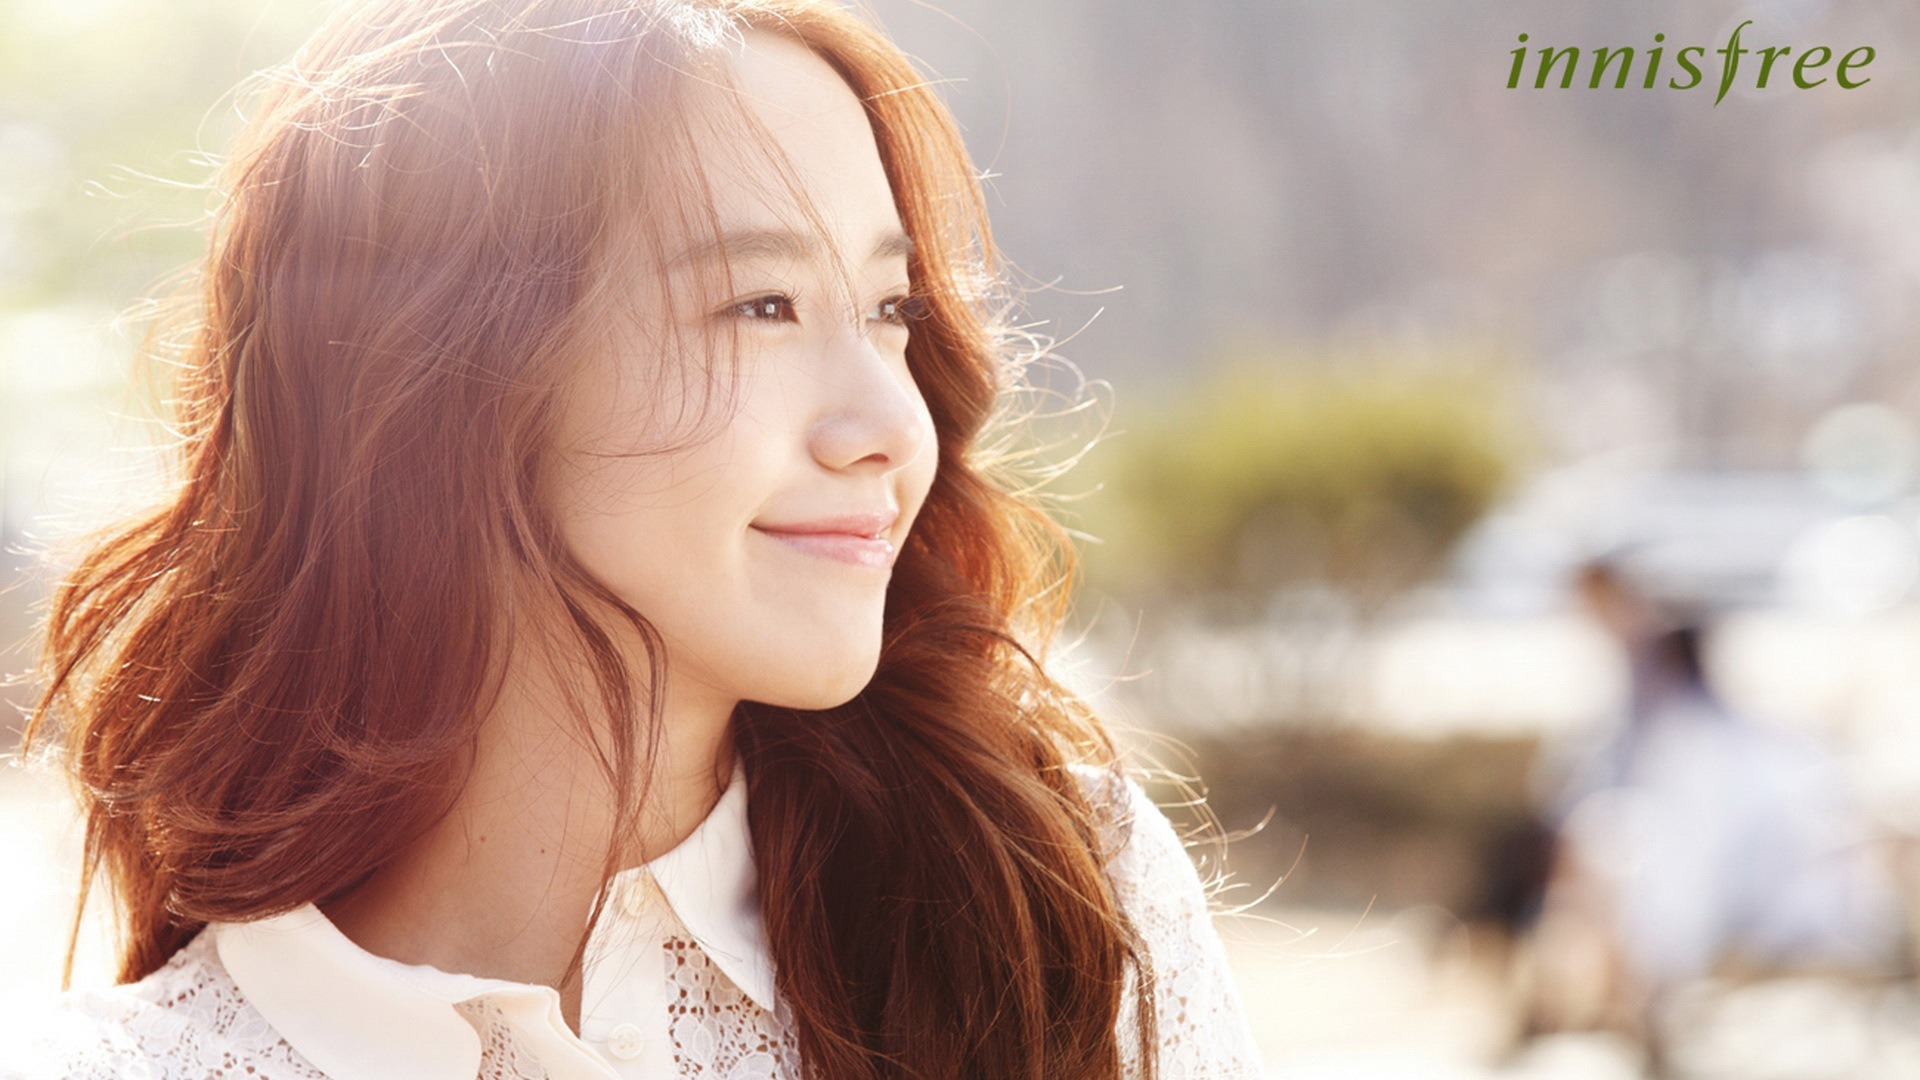 HD Wallpapers Im Yoona high quality and definition